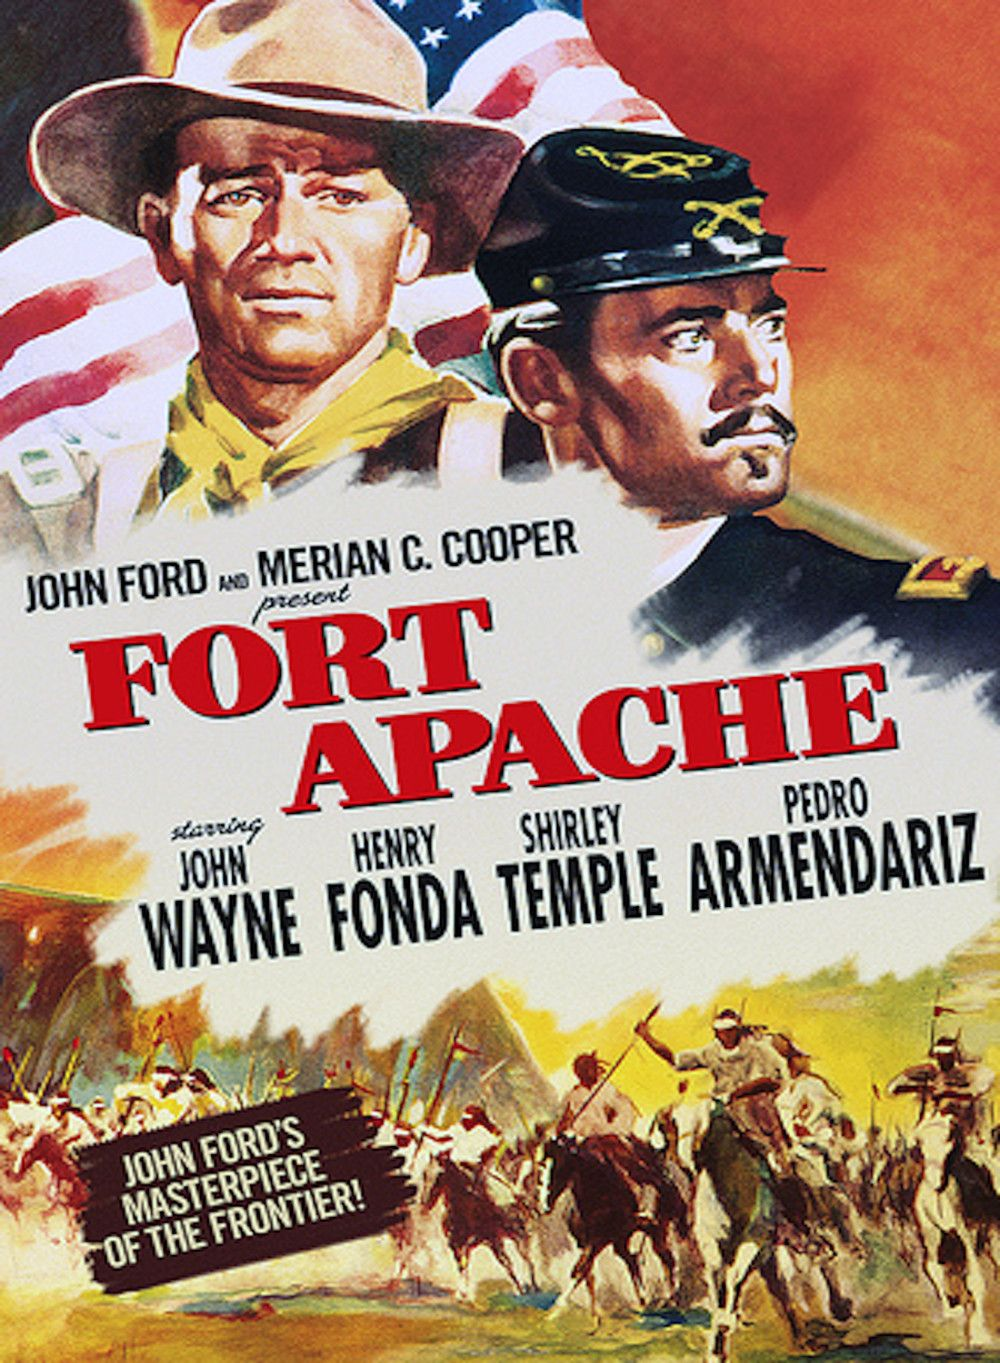 affiches posters et images de le massacre de fort apache. Black Bedroom Furniture Sets. Home Design Ideas